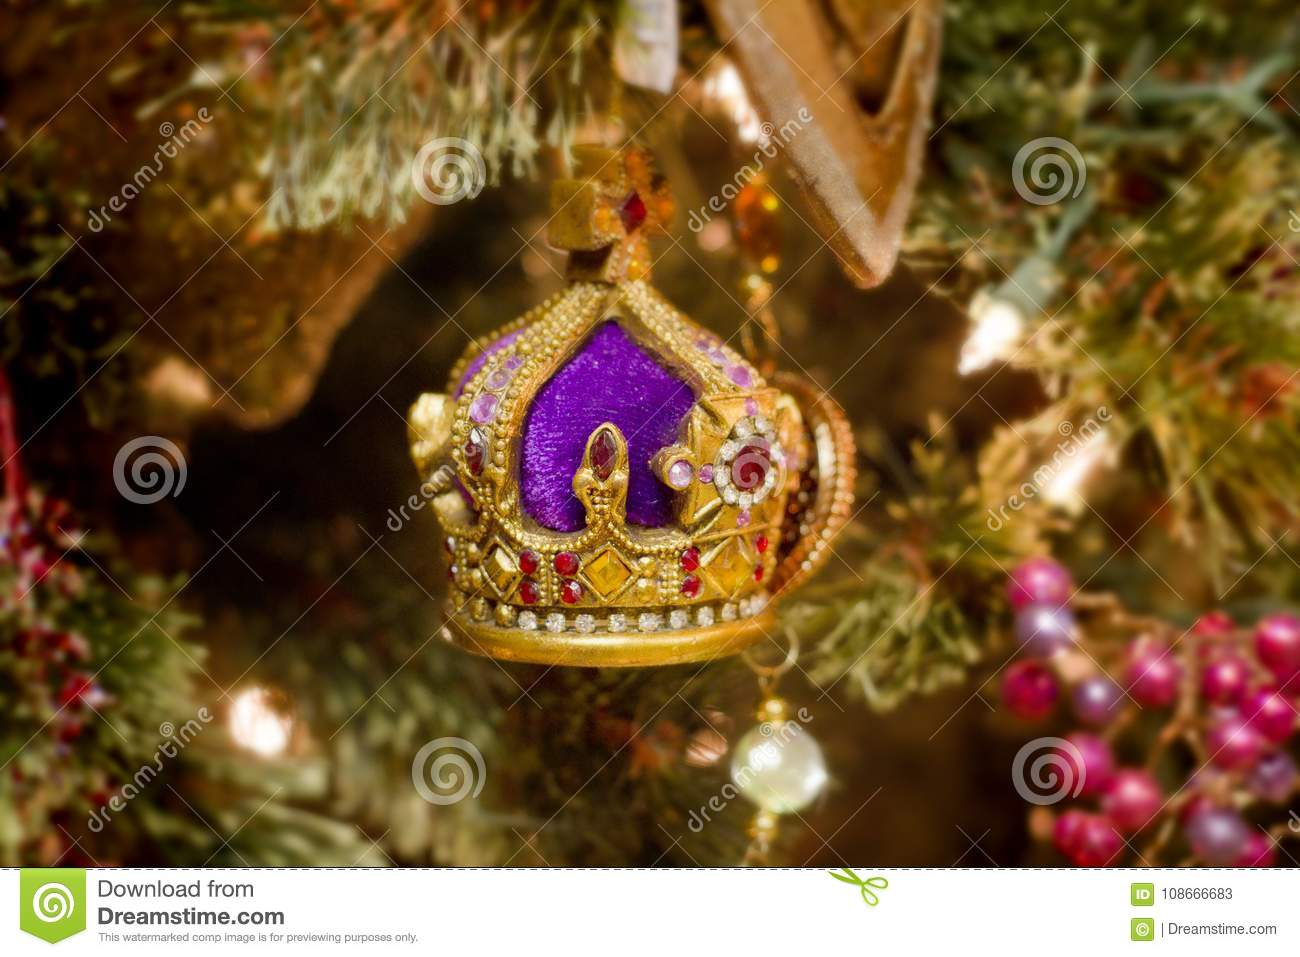 Crown Christmas Ornaments.Christmas Crown Ornament On A Tree Stock Image Image Of